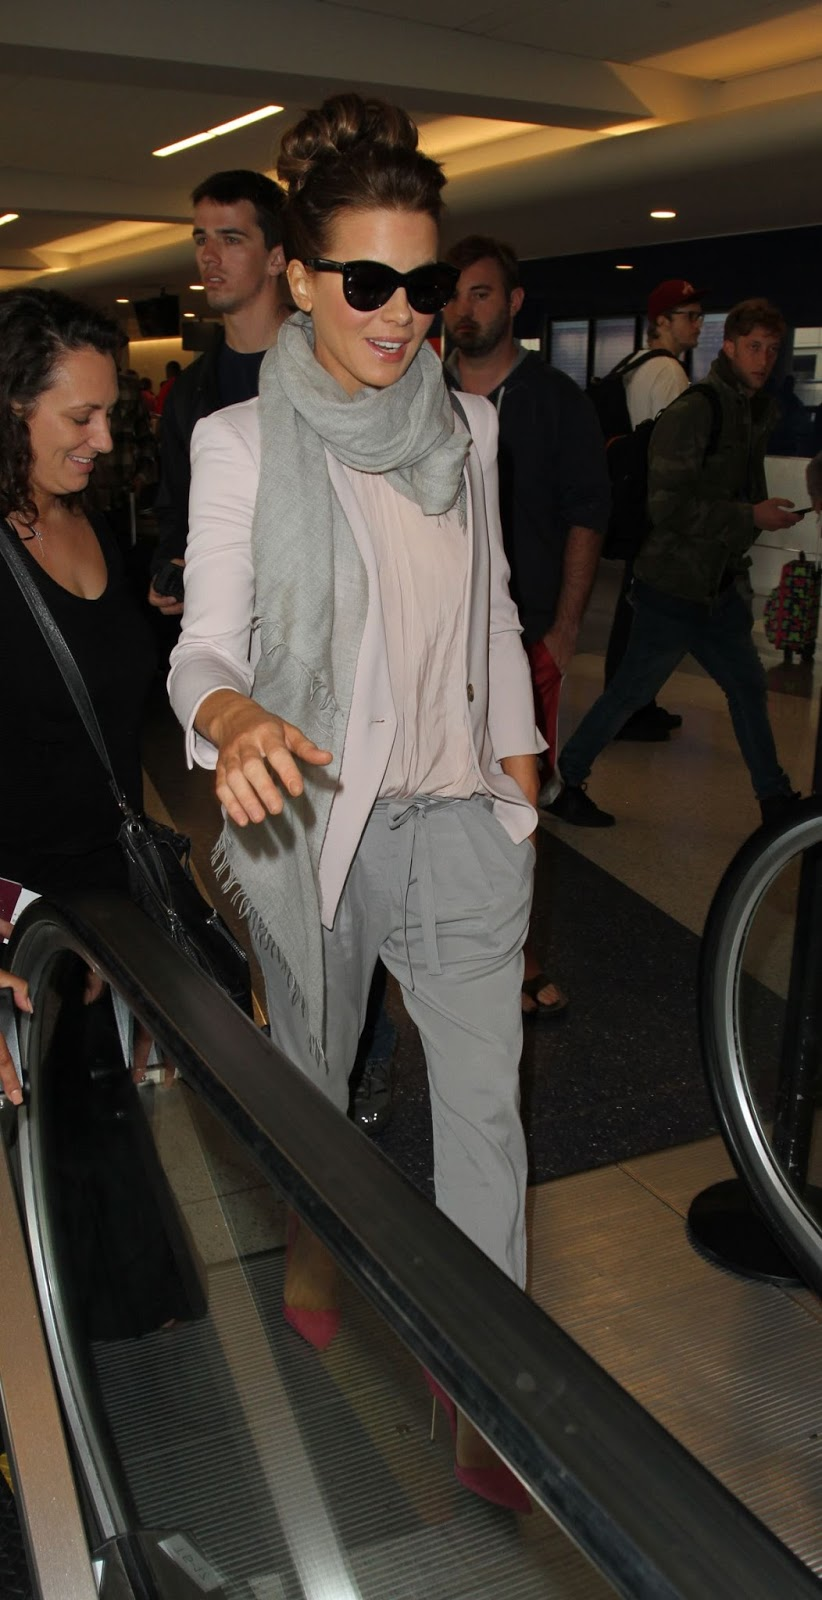 Kate Beckinsale hot sunglasses At Lax Airport